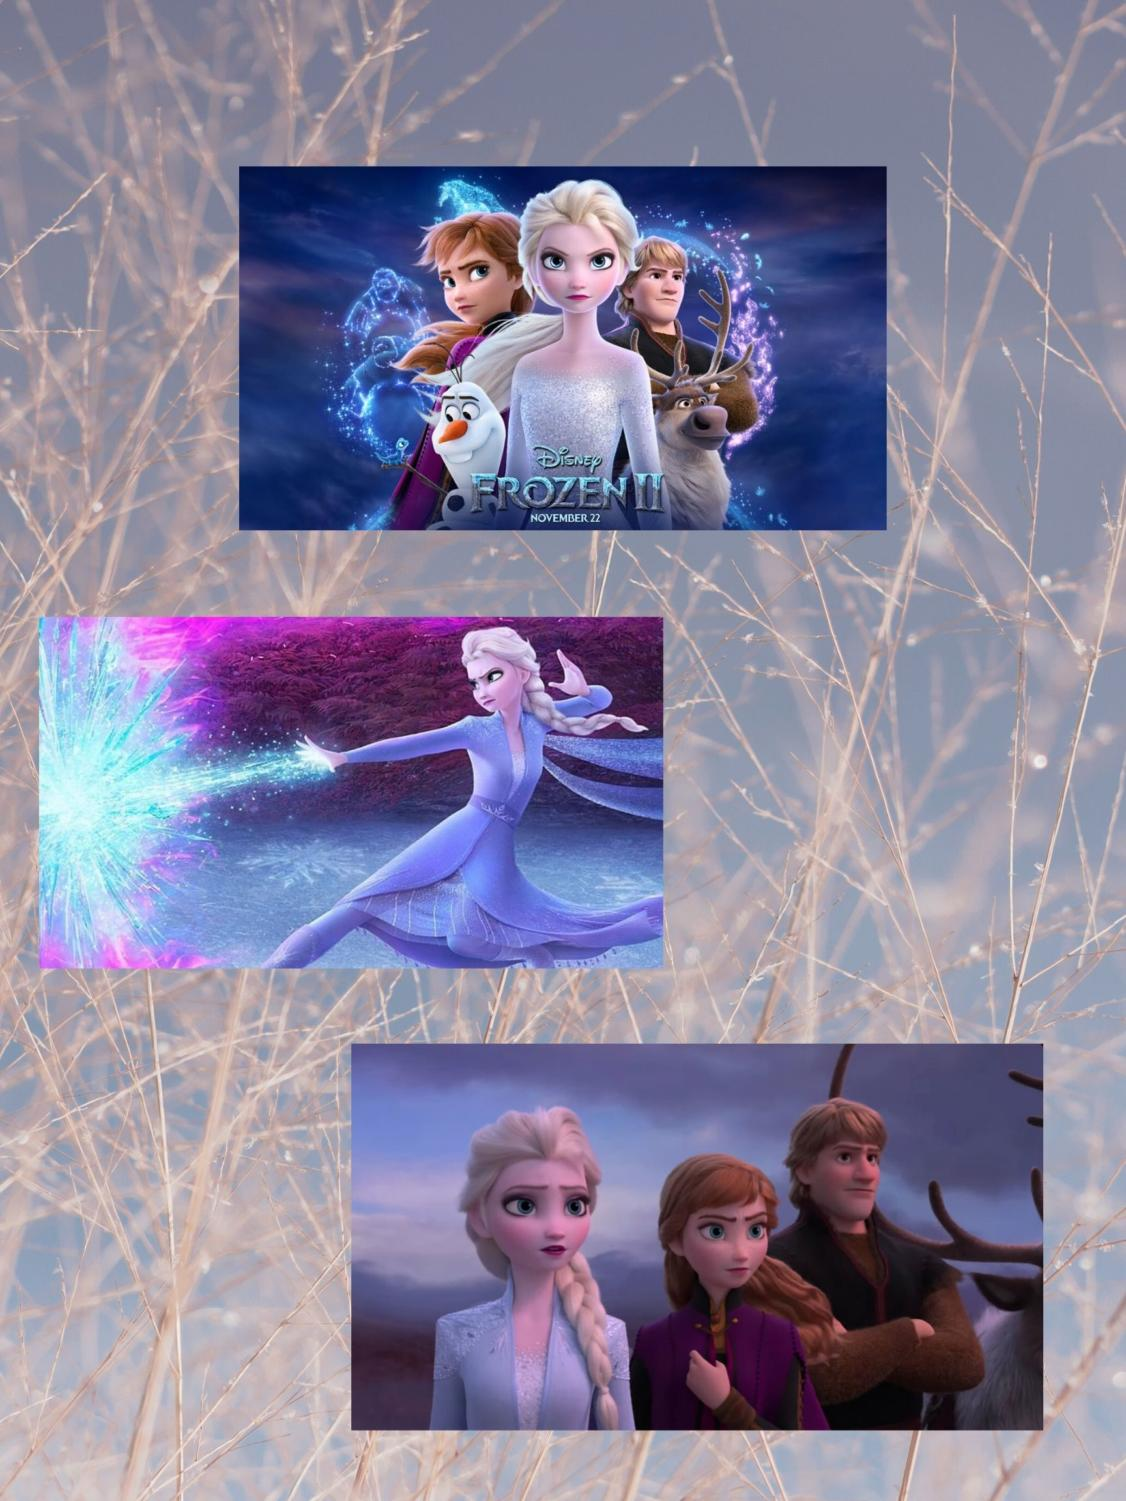 Frozen 2 comes out with another icier story.